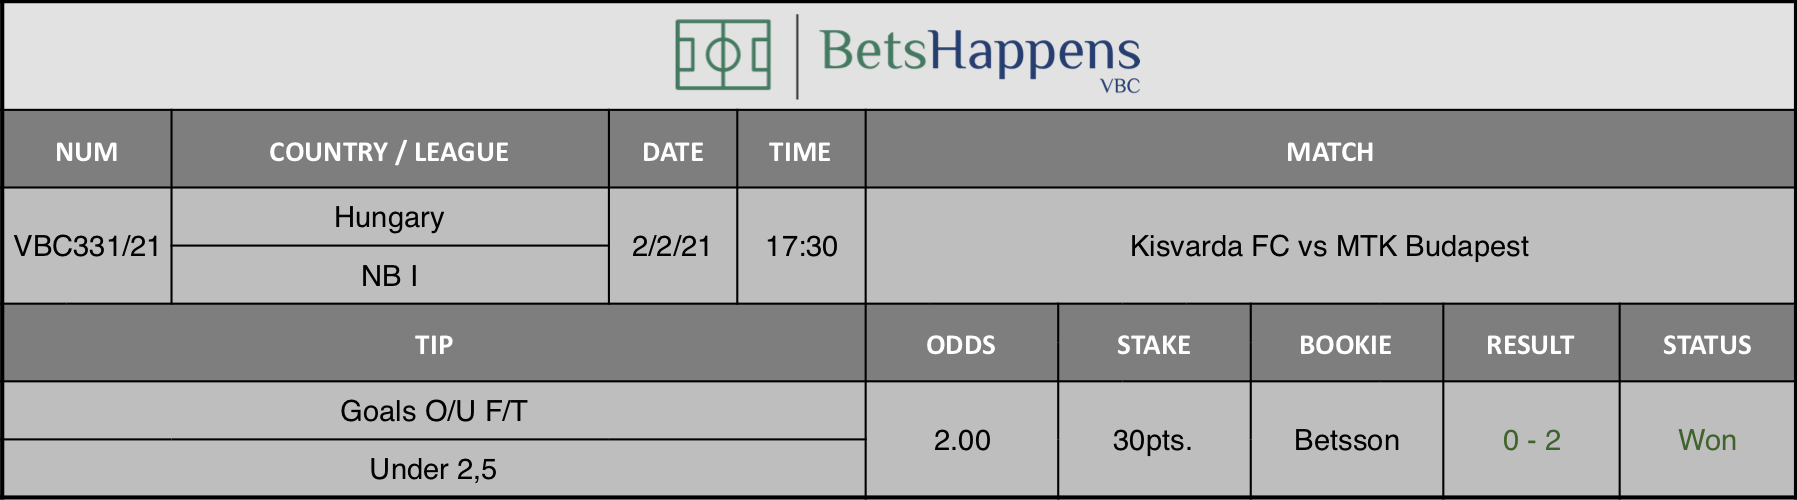 Results of our tip for the Kisvarda FC vs MTK Budapest match where Goals O/U F/T Under 2,5 is recommended.